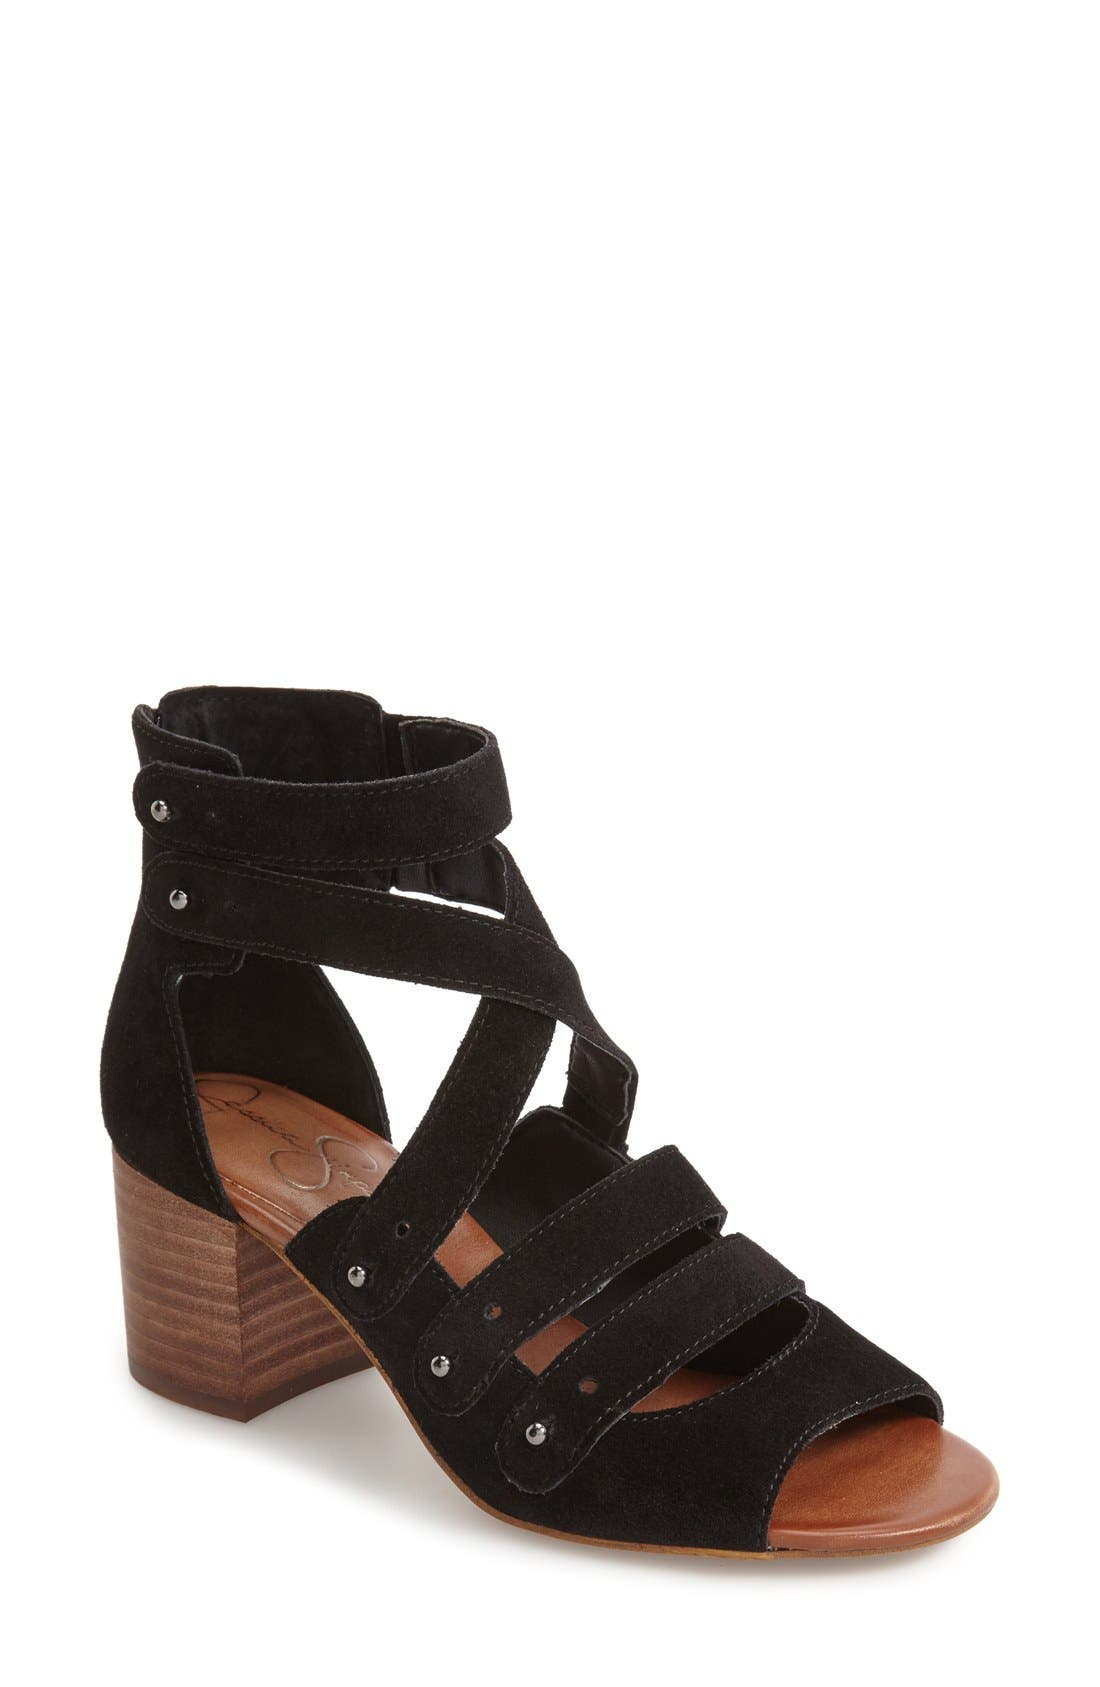 Alternate Image 1 Selected - Jessica Simpson Halacie Ankle Strap Sandal (Women)